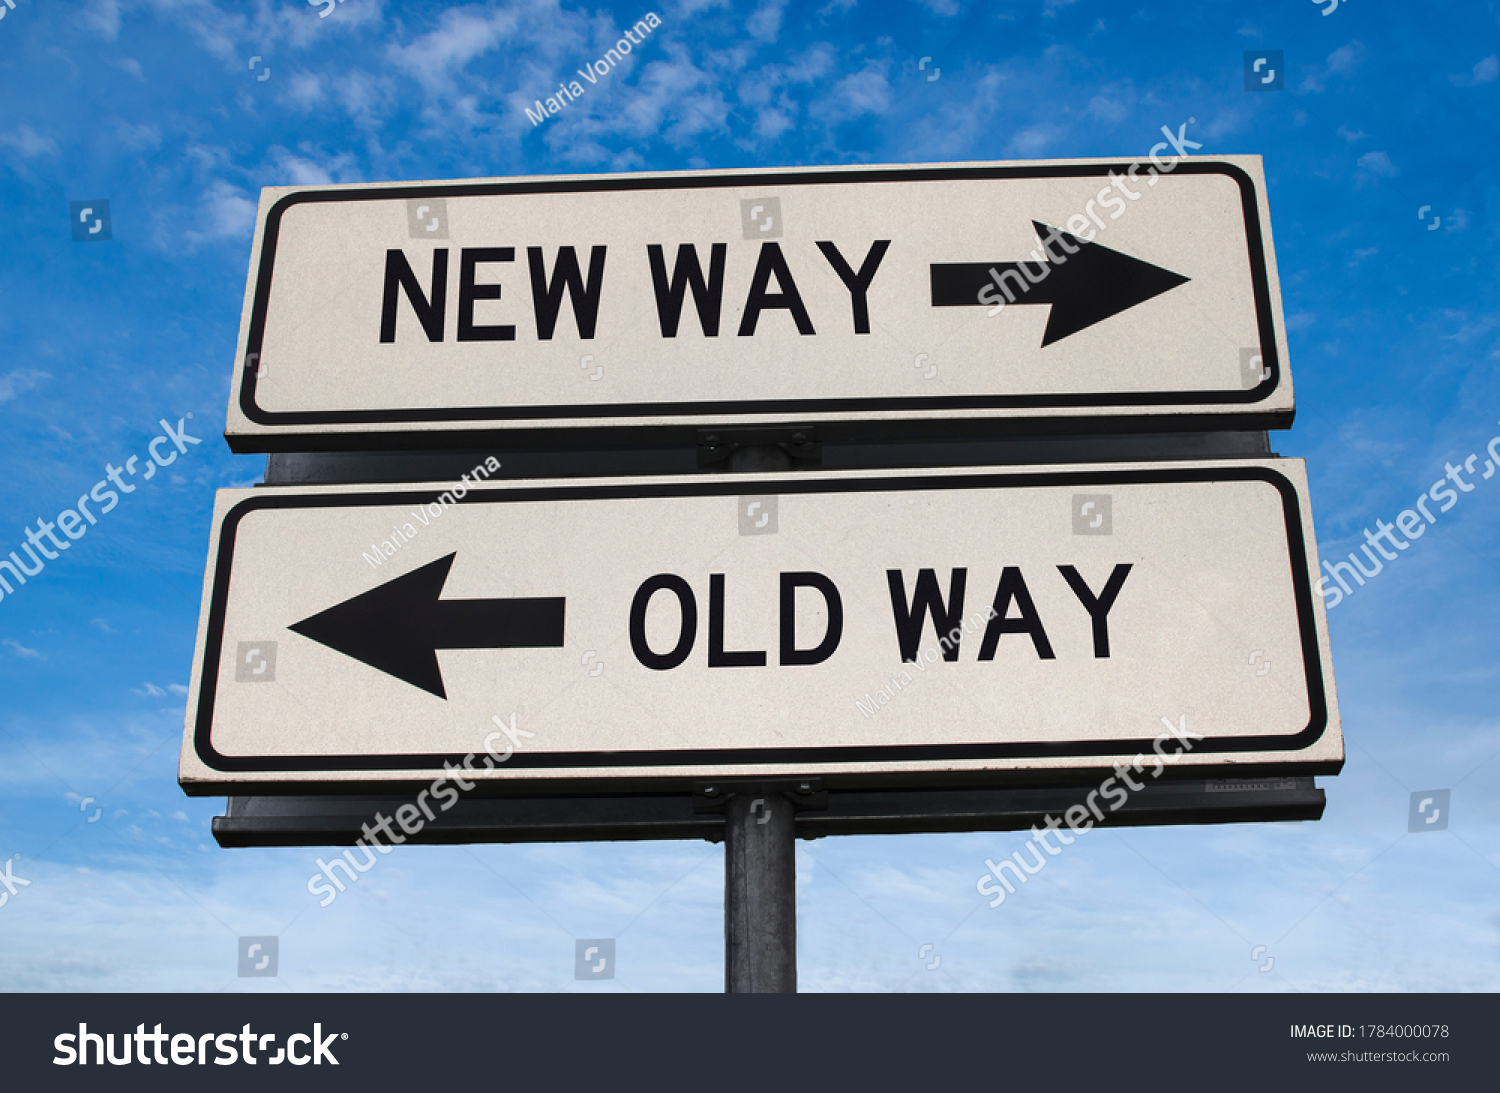 New way versus old way road sign. White two street signs with arrow on metal pole with word. Directional road. Crossroads Road Sign, Two Arrow. Blue sky background. Two way road sign with text. #1784000078